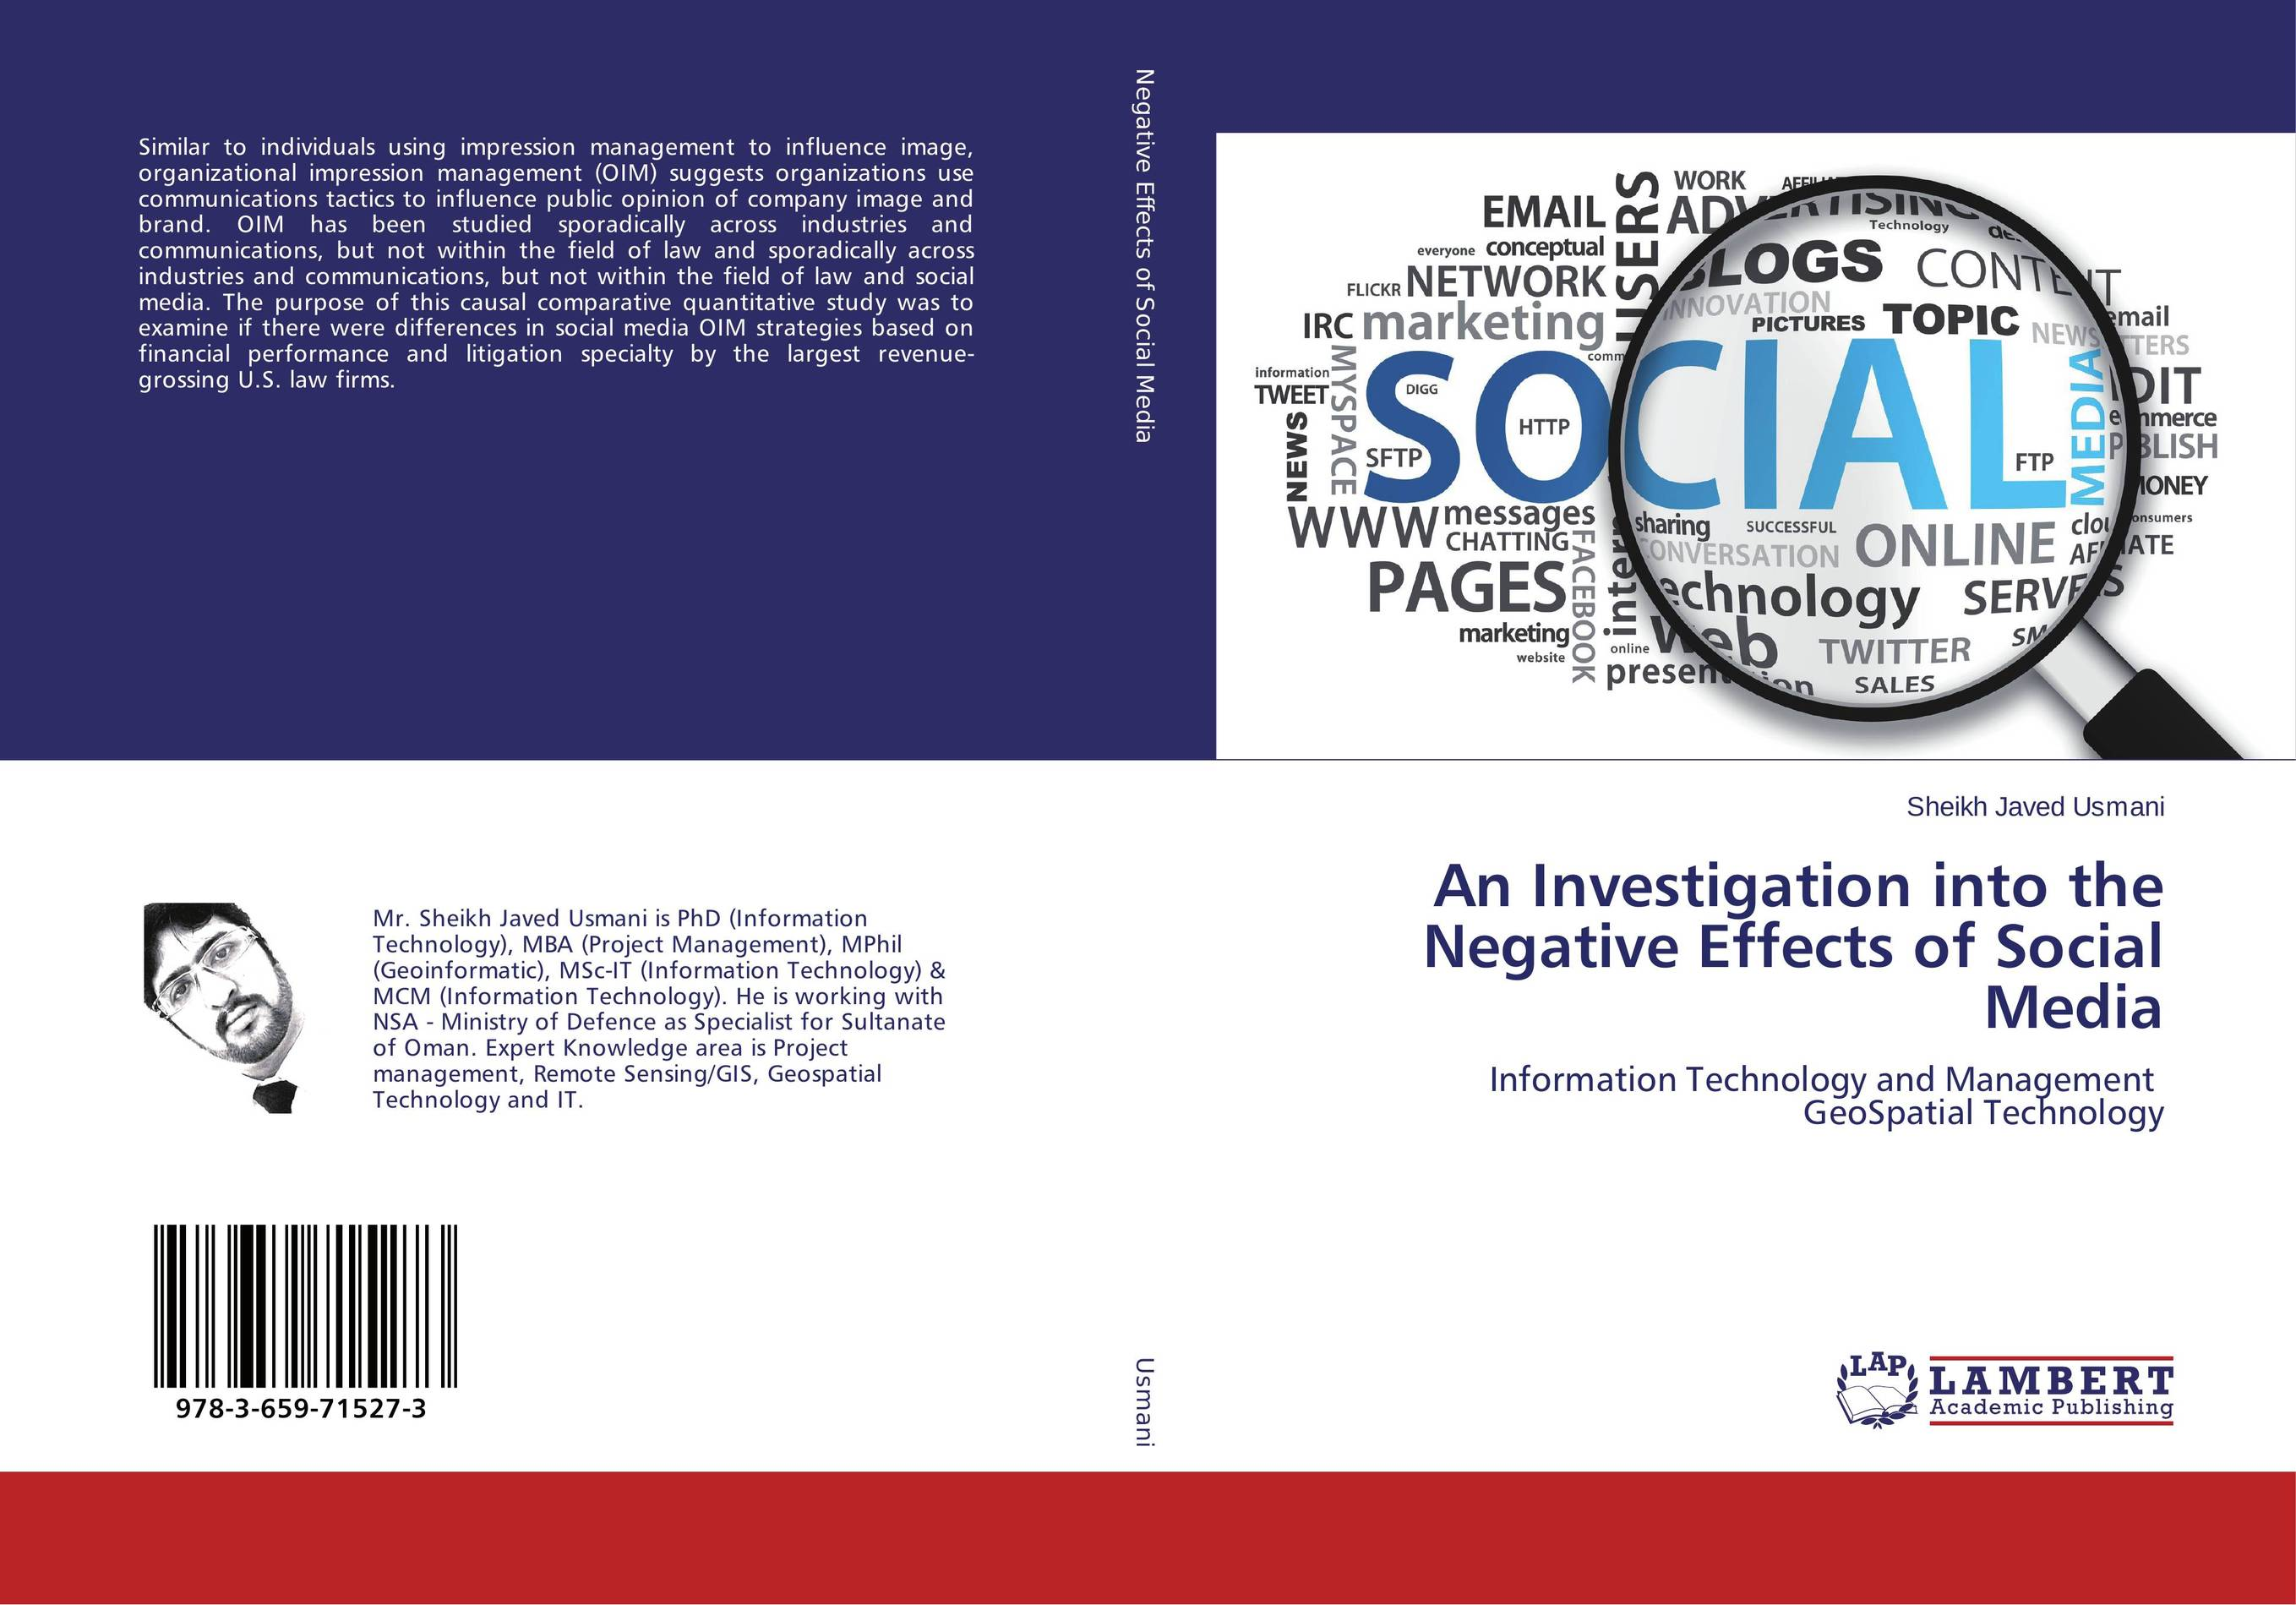 An Investigation into the Negative Effects of Social Media